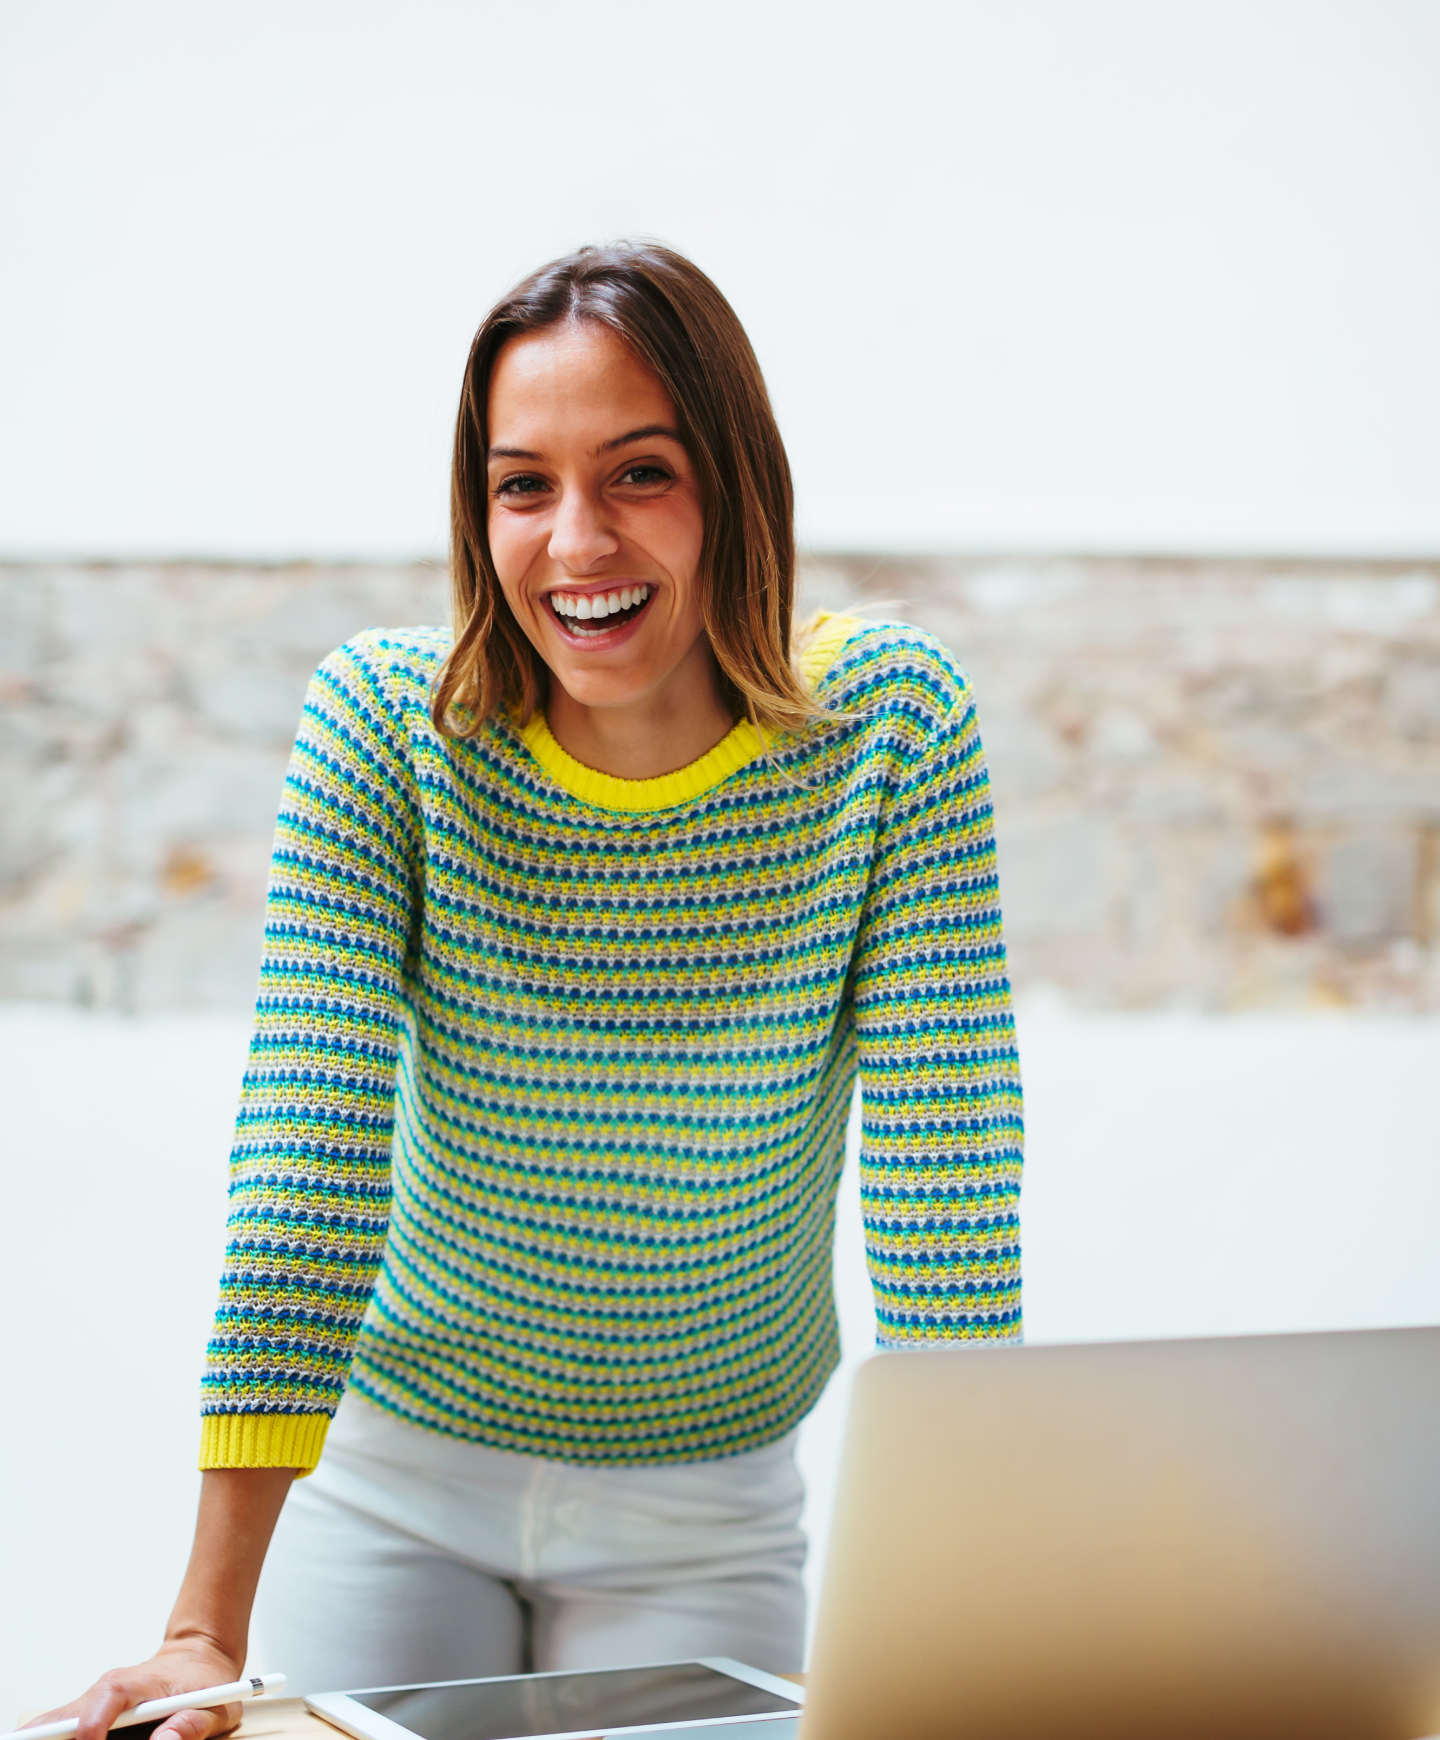 Photo of a smiling woman in a striped sweater